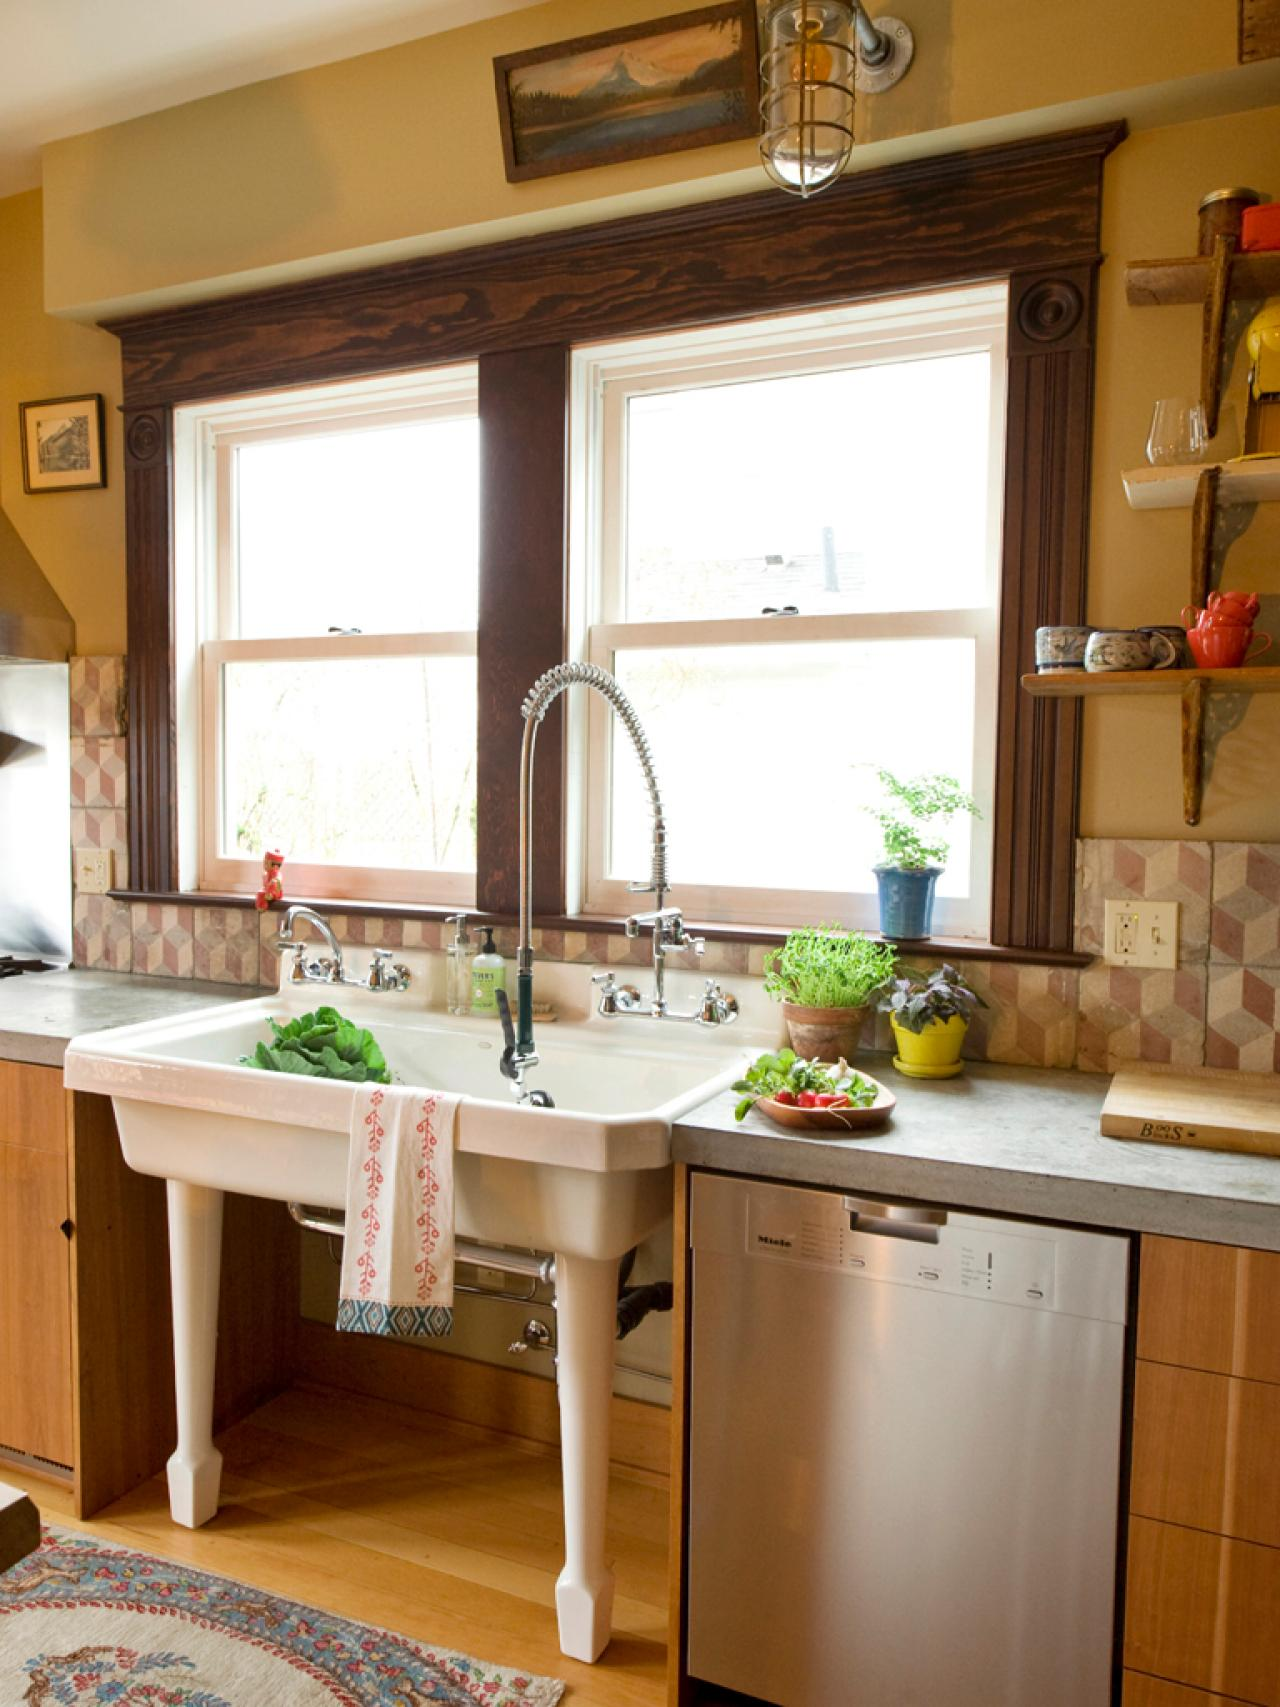 stainless steel kitchen cabinets: pictures, options, tips & ideas